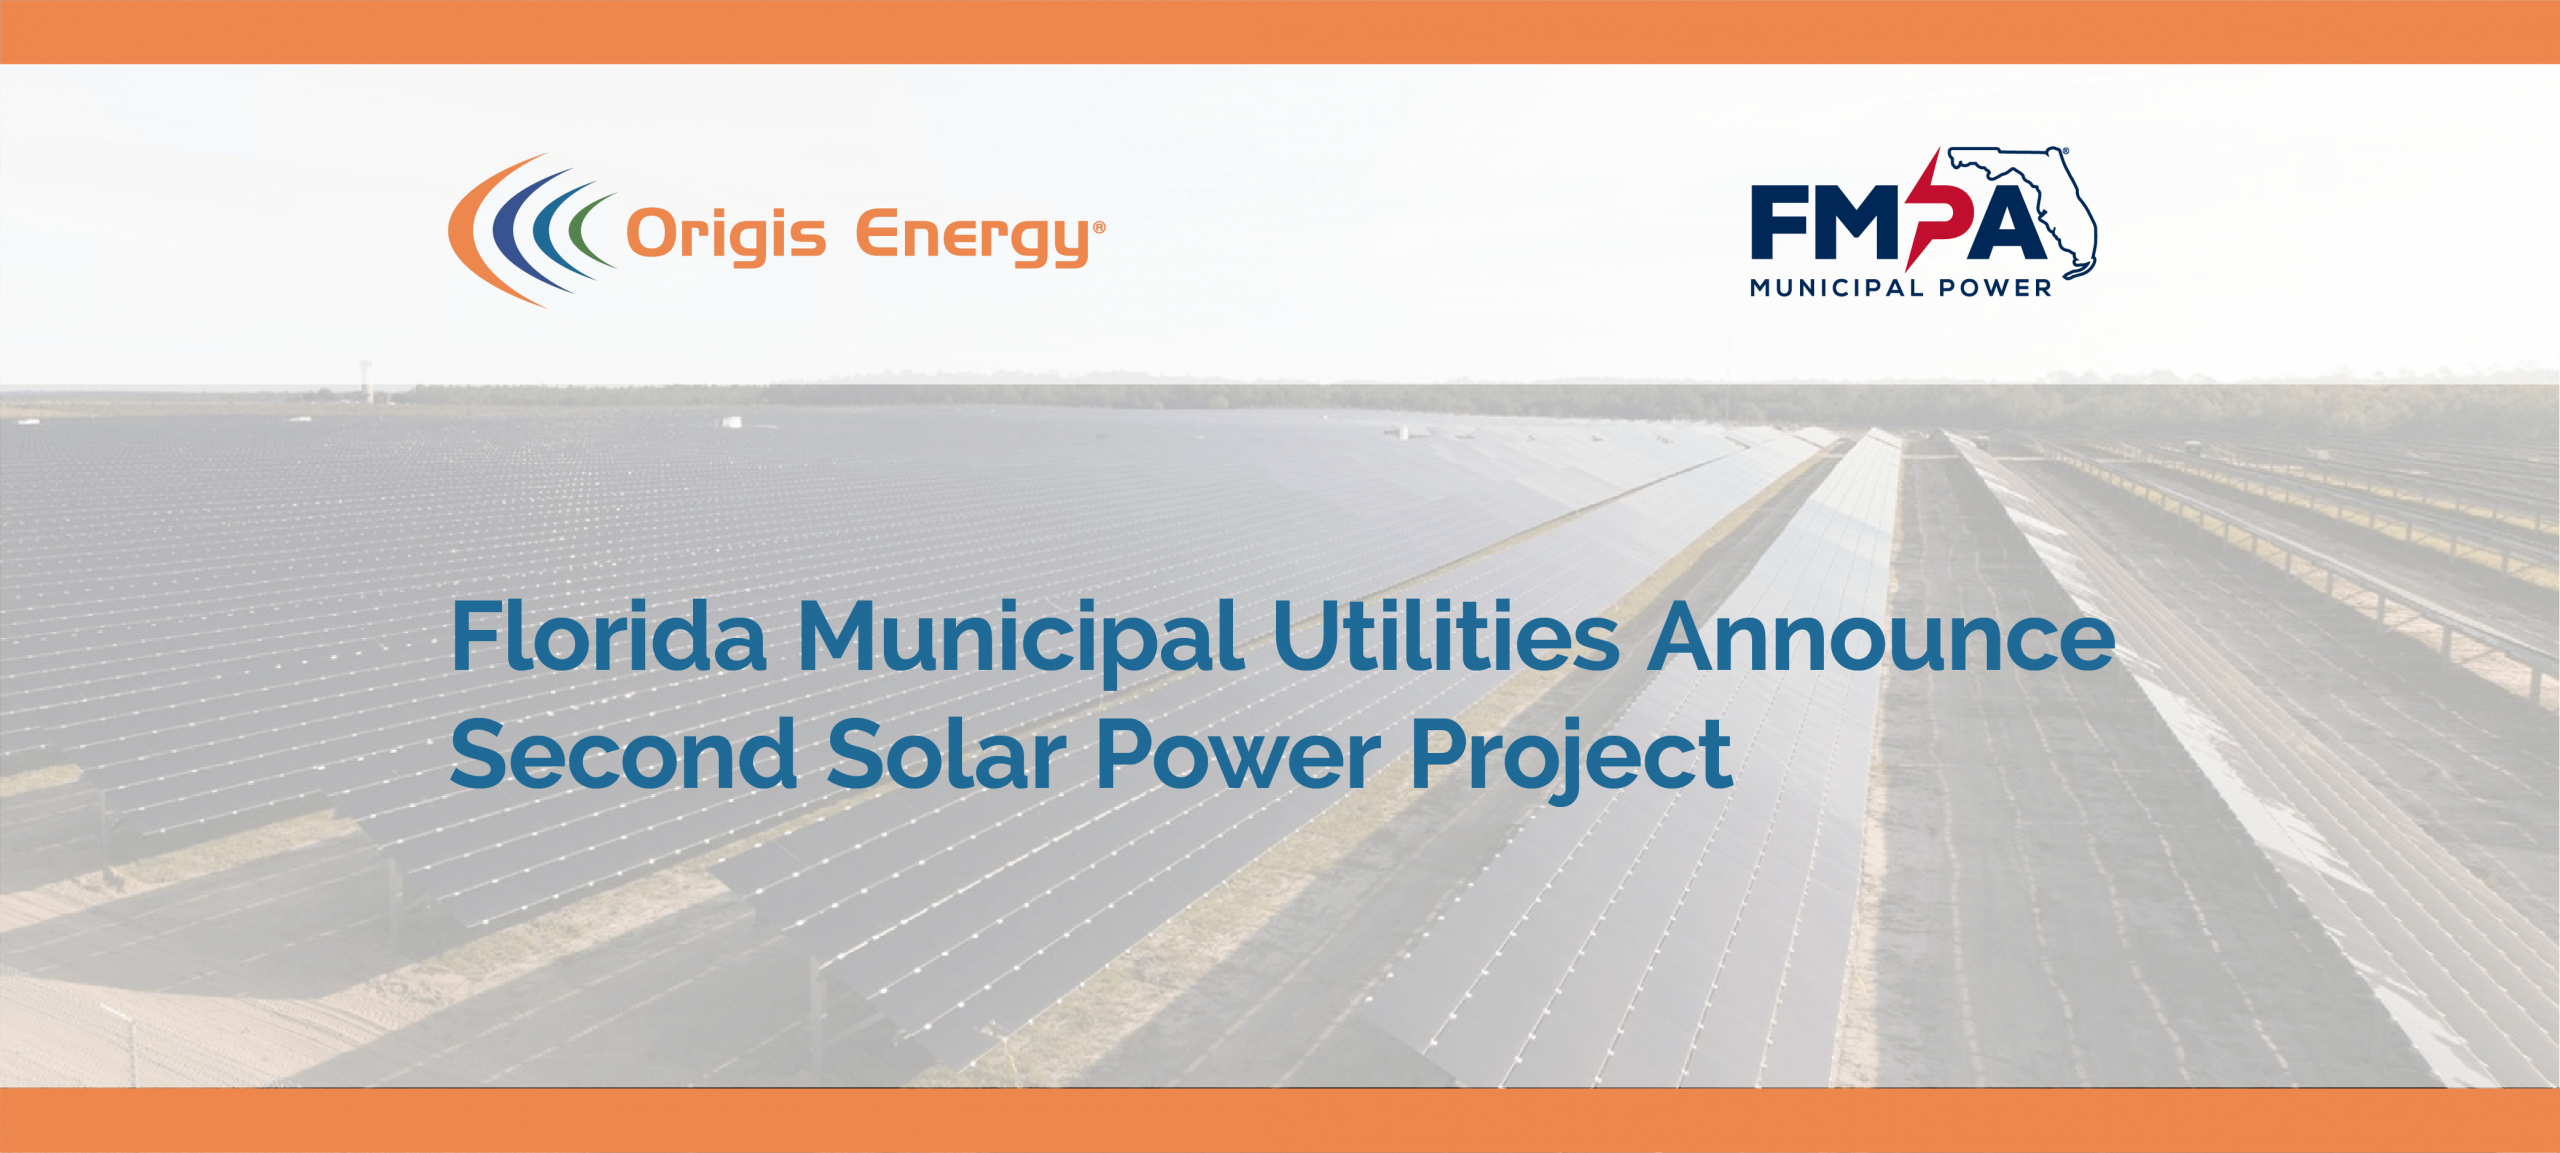 Florida Municipal Utilities Announce Second Solar Power Project